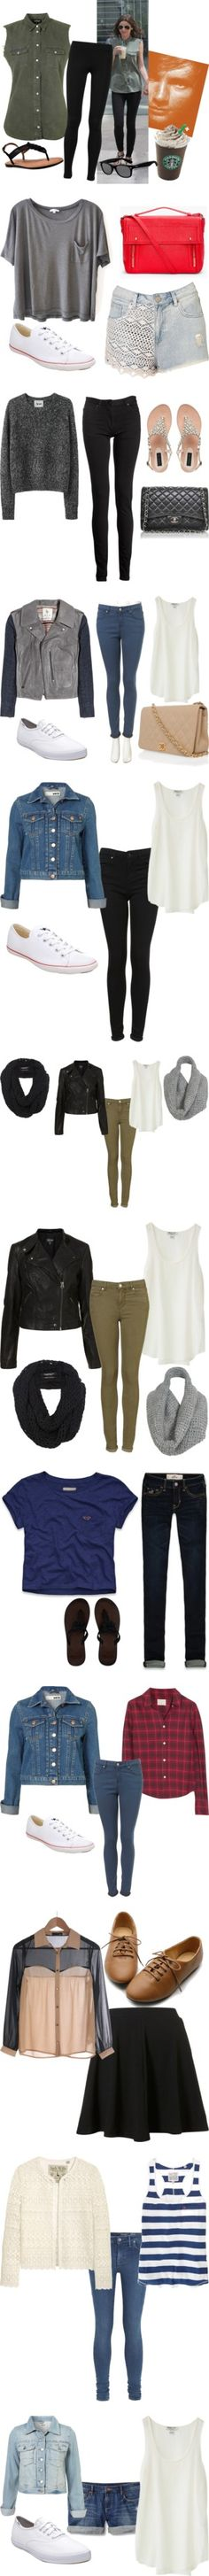 """Eleanor Calder Inspired"" by samanthachamberlain ❤ liked on Polyvore BEST CLOTHES SCHEME EVER!!"